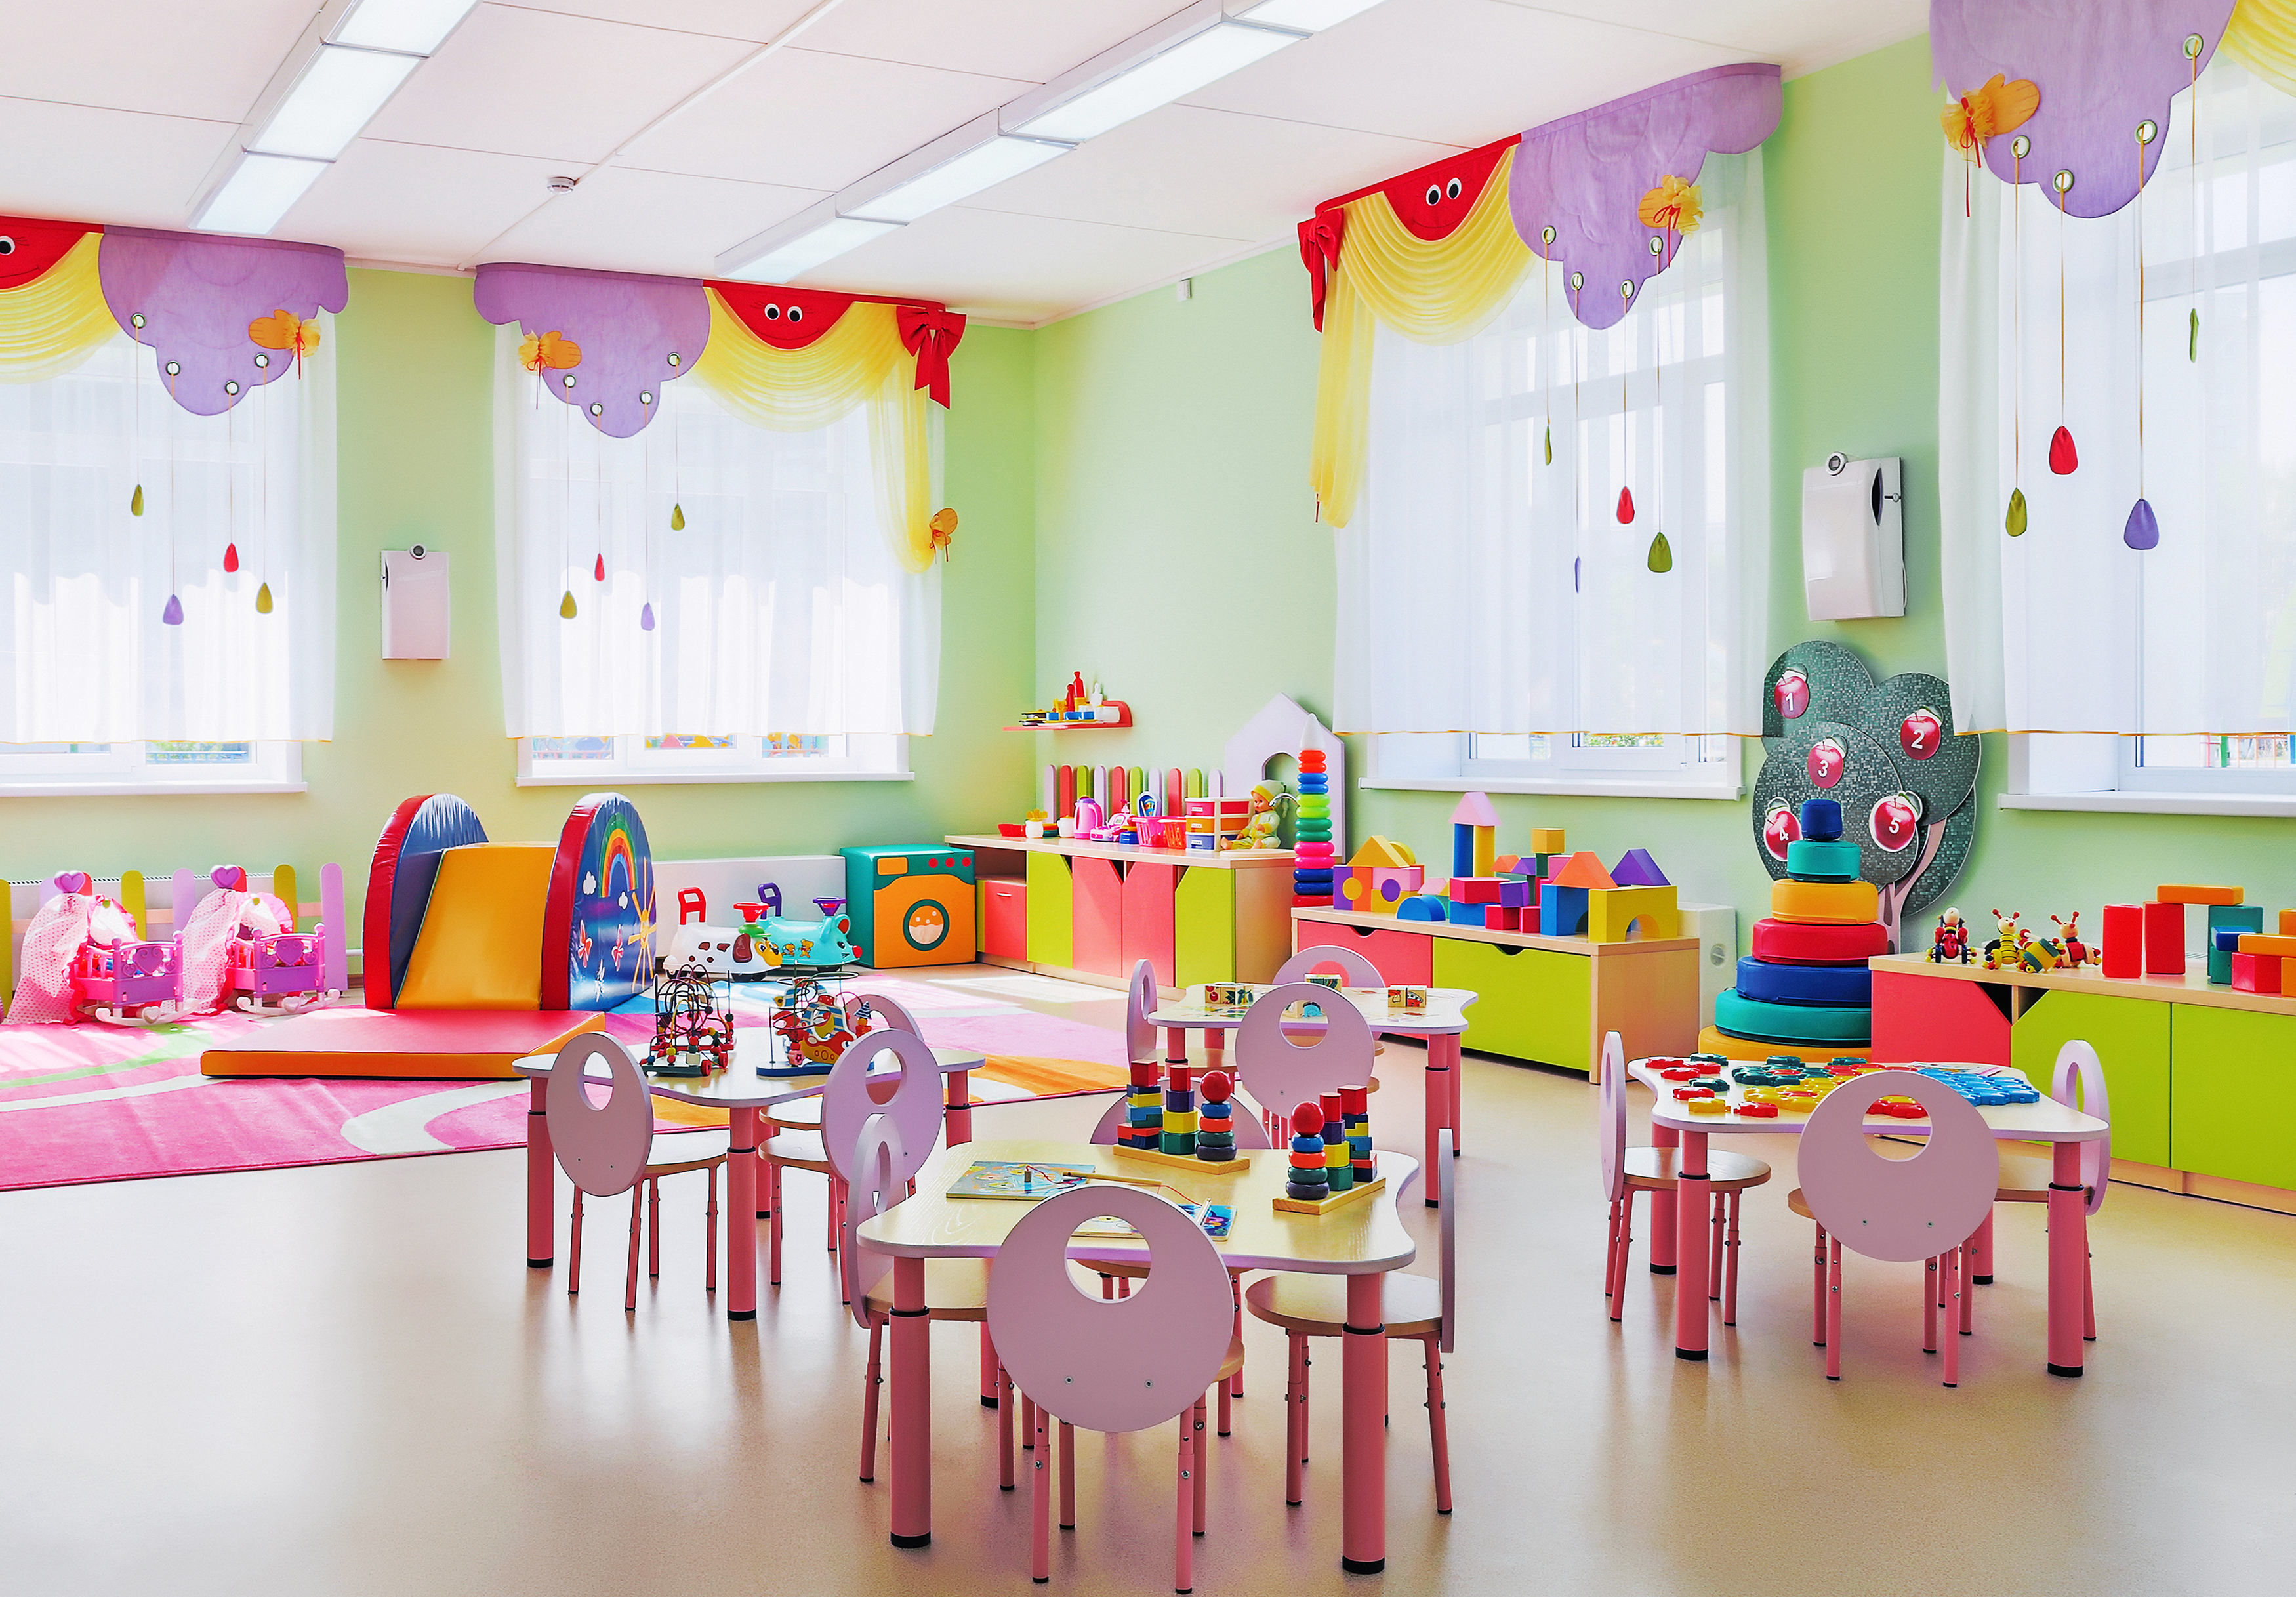 What Supplies Are Necessary to Set Up a Preschool?